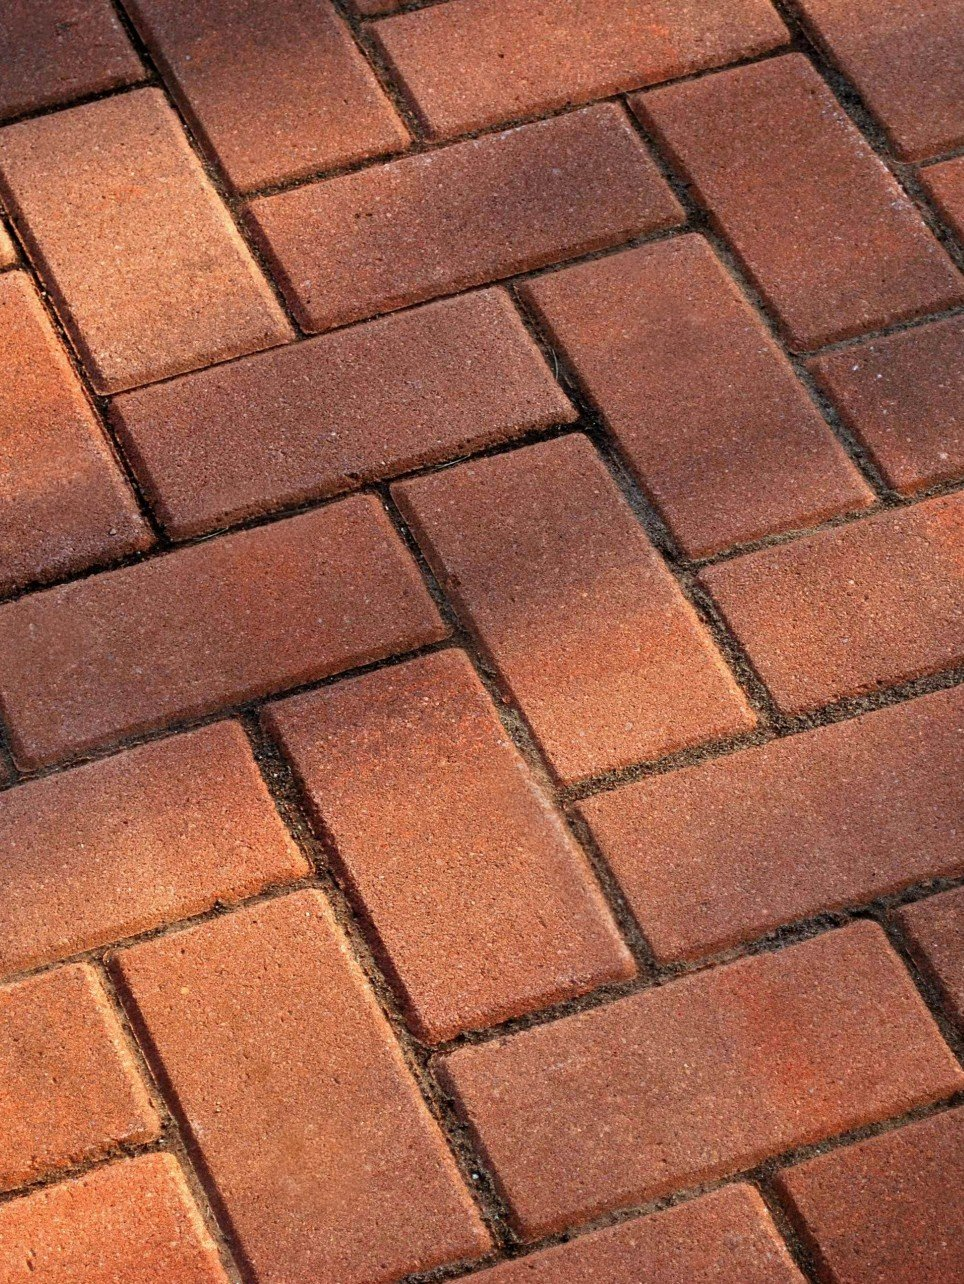 Block Paving Companies Wylde Green